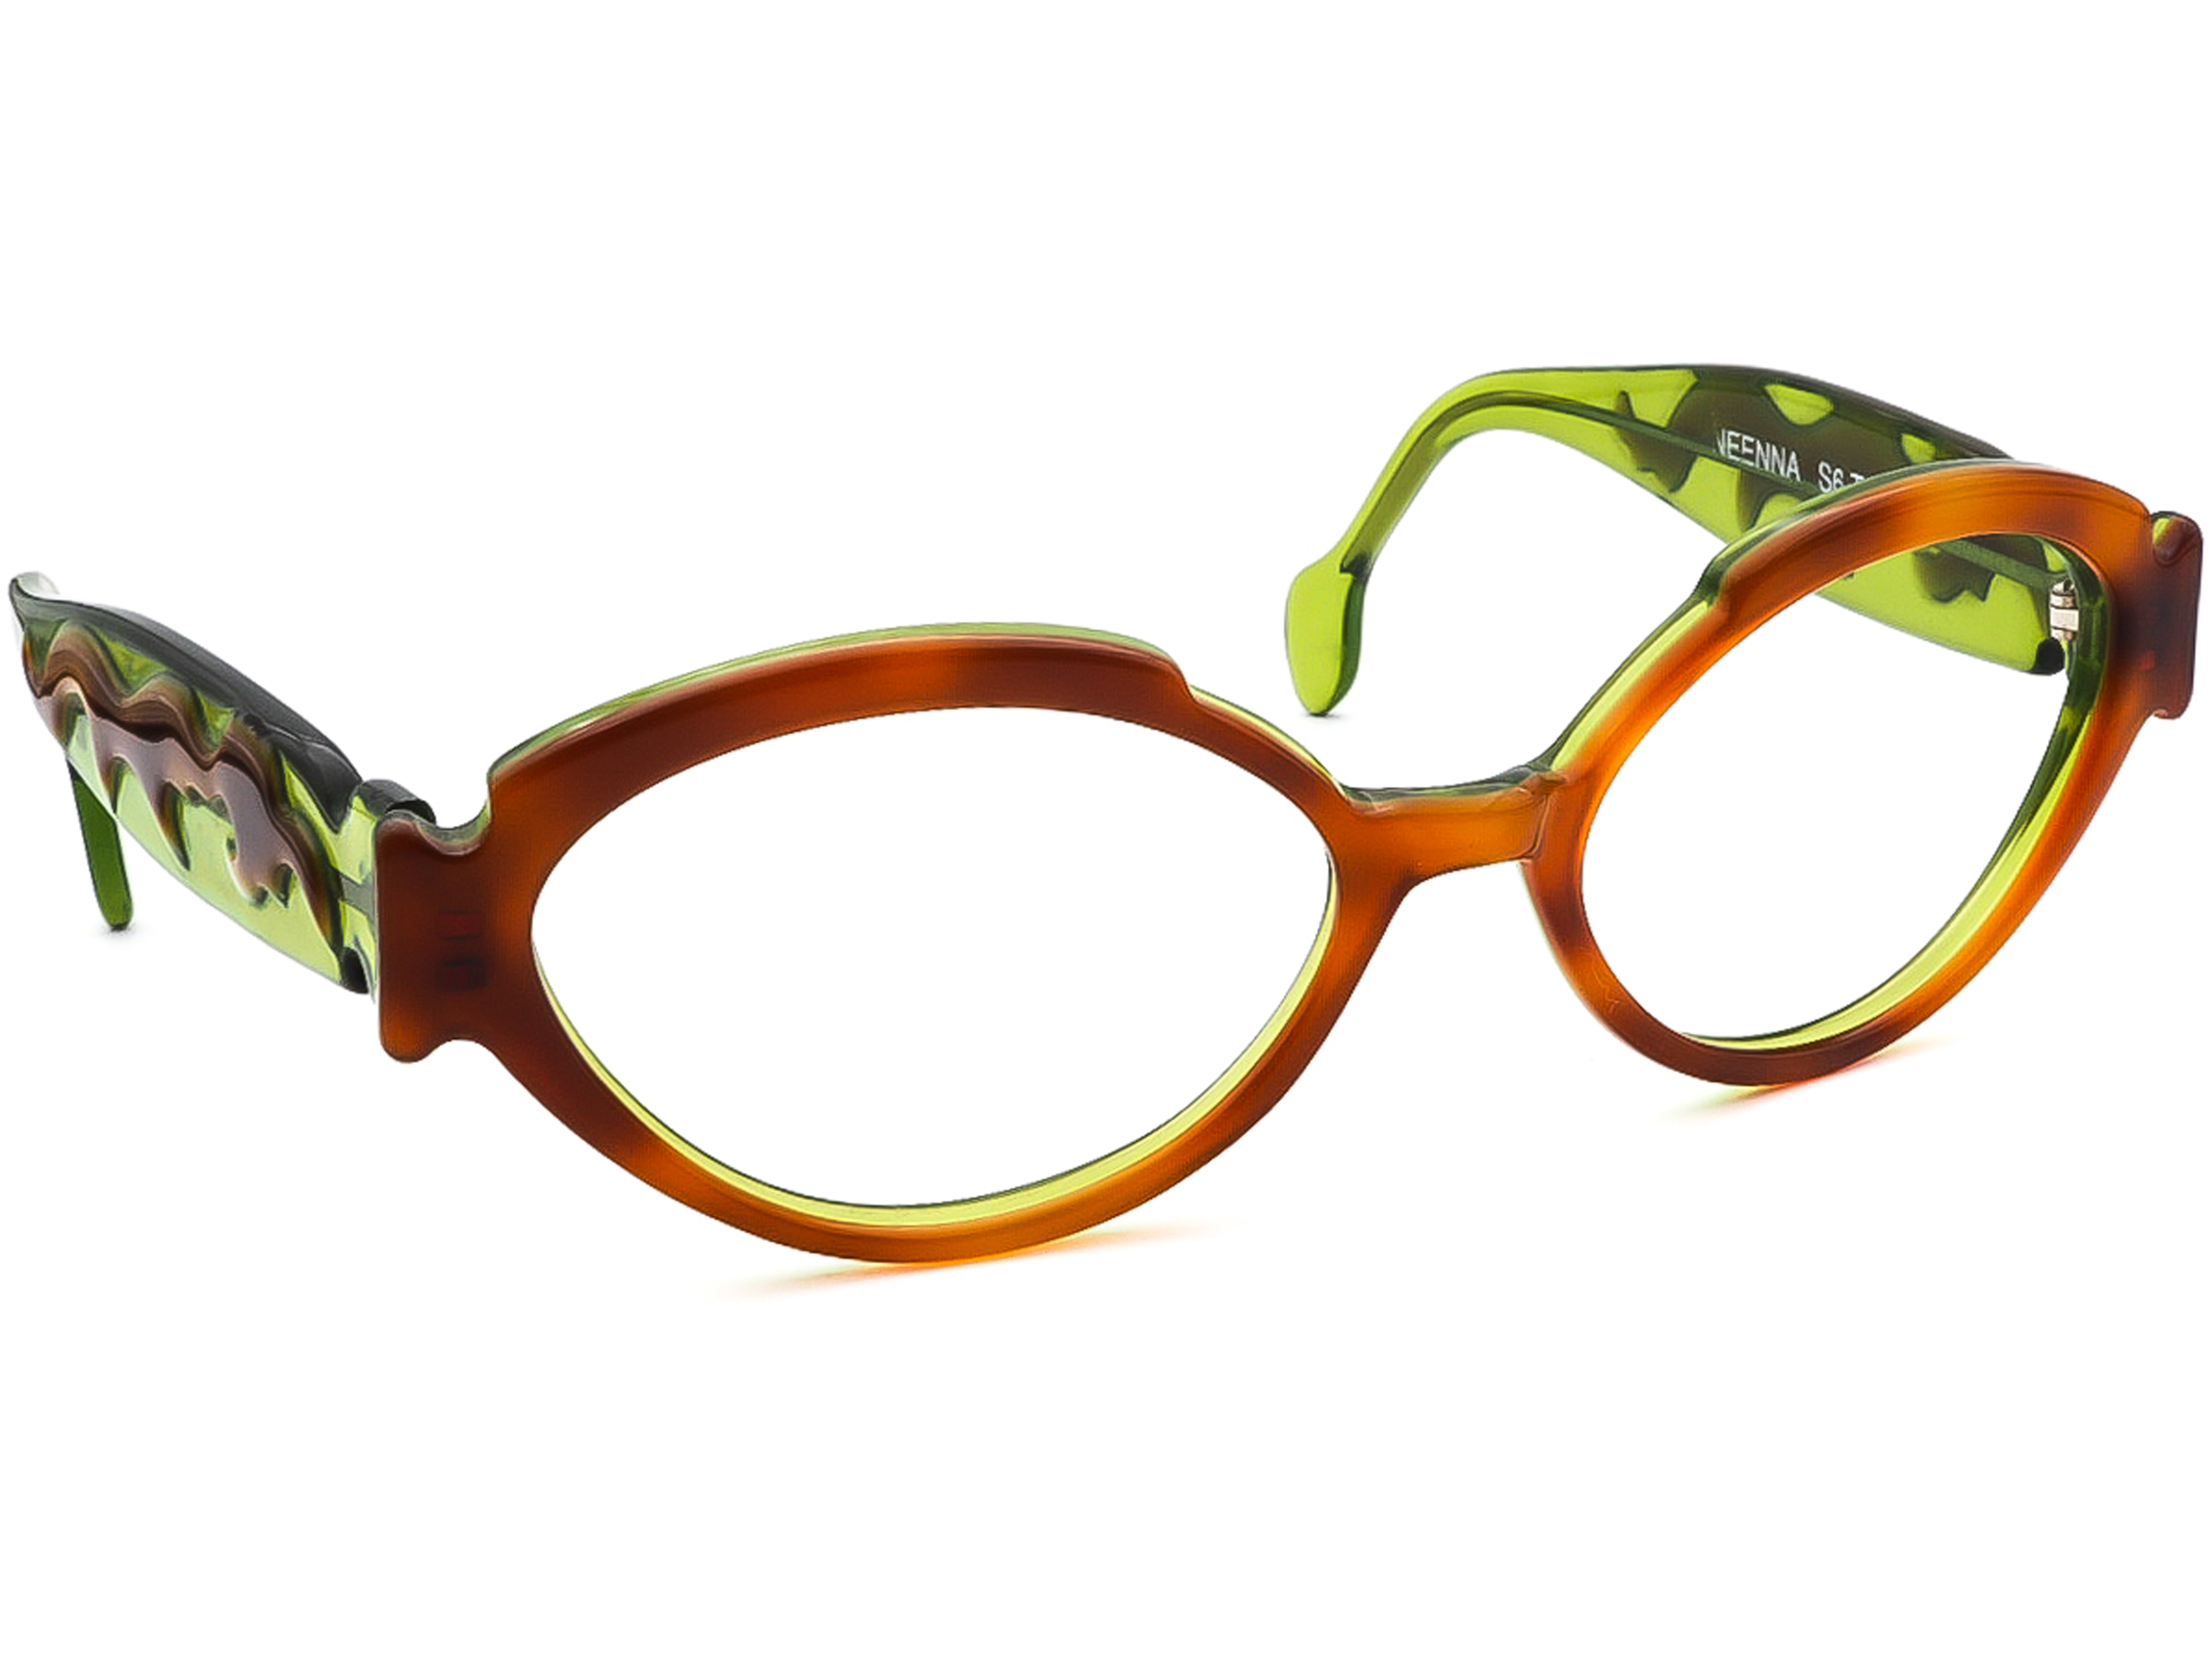 ANNE ET VALENTIN WEENNA S6 Sunglasses Frame Only